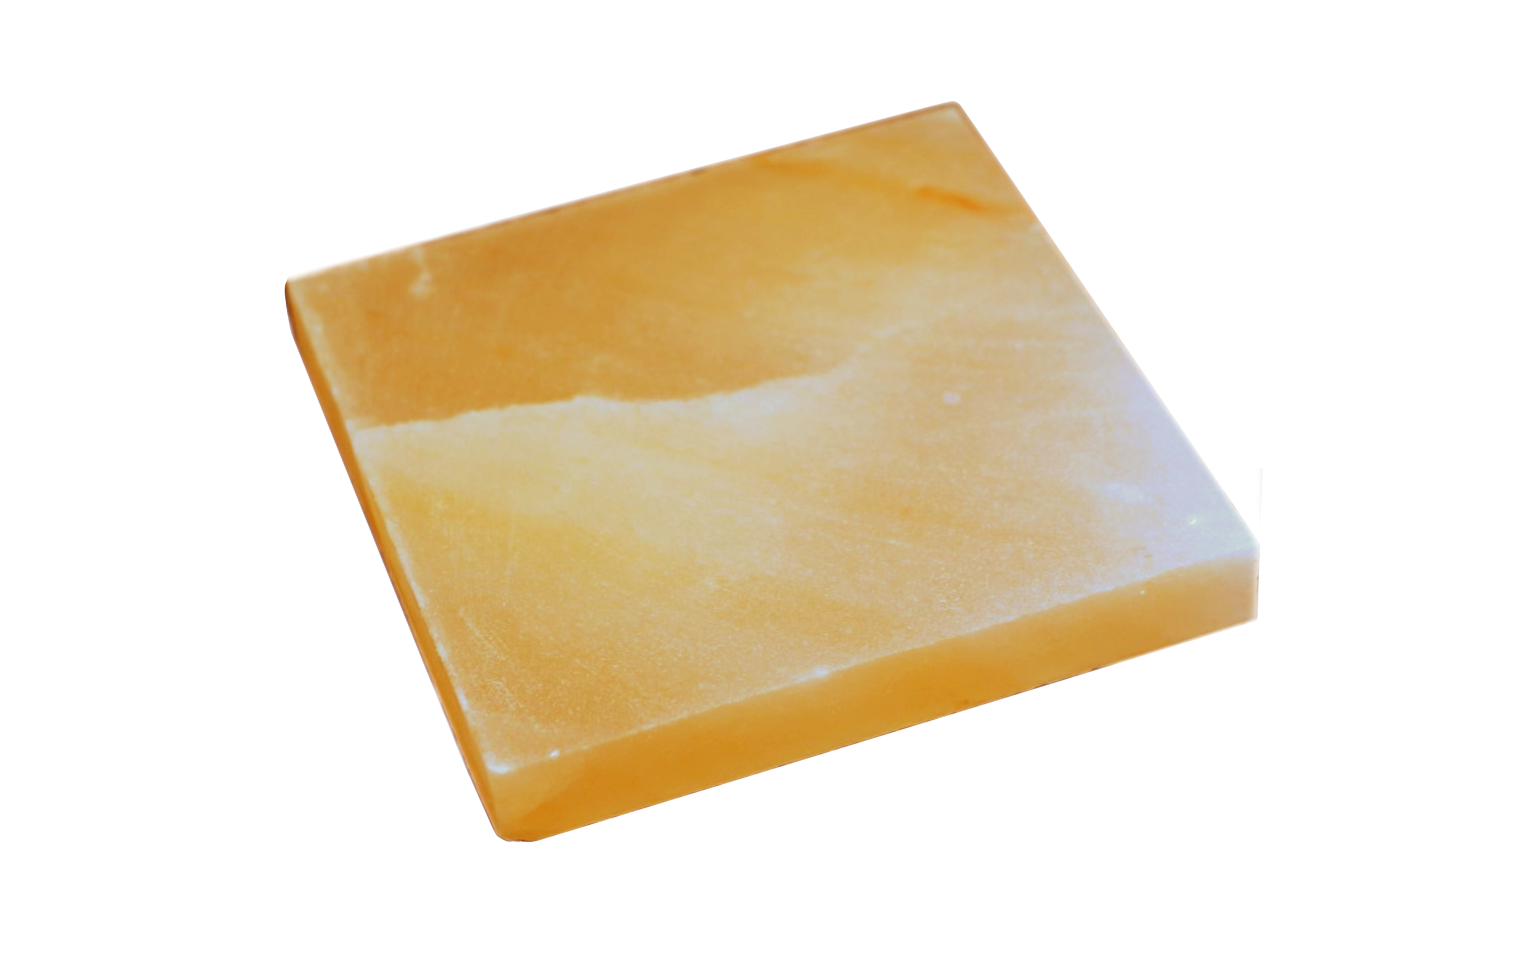 Square Cook Plate, 8 Inch (ᴜsᴅ) Image